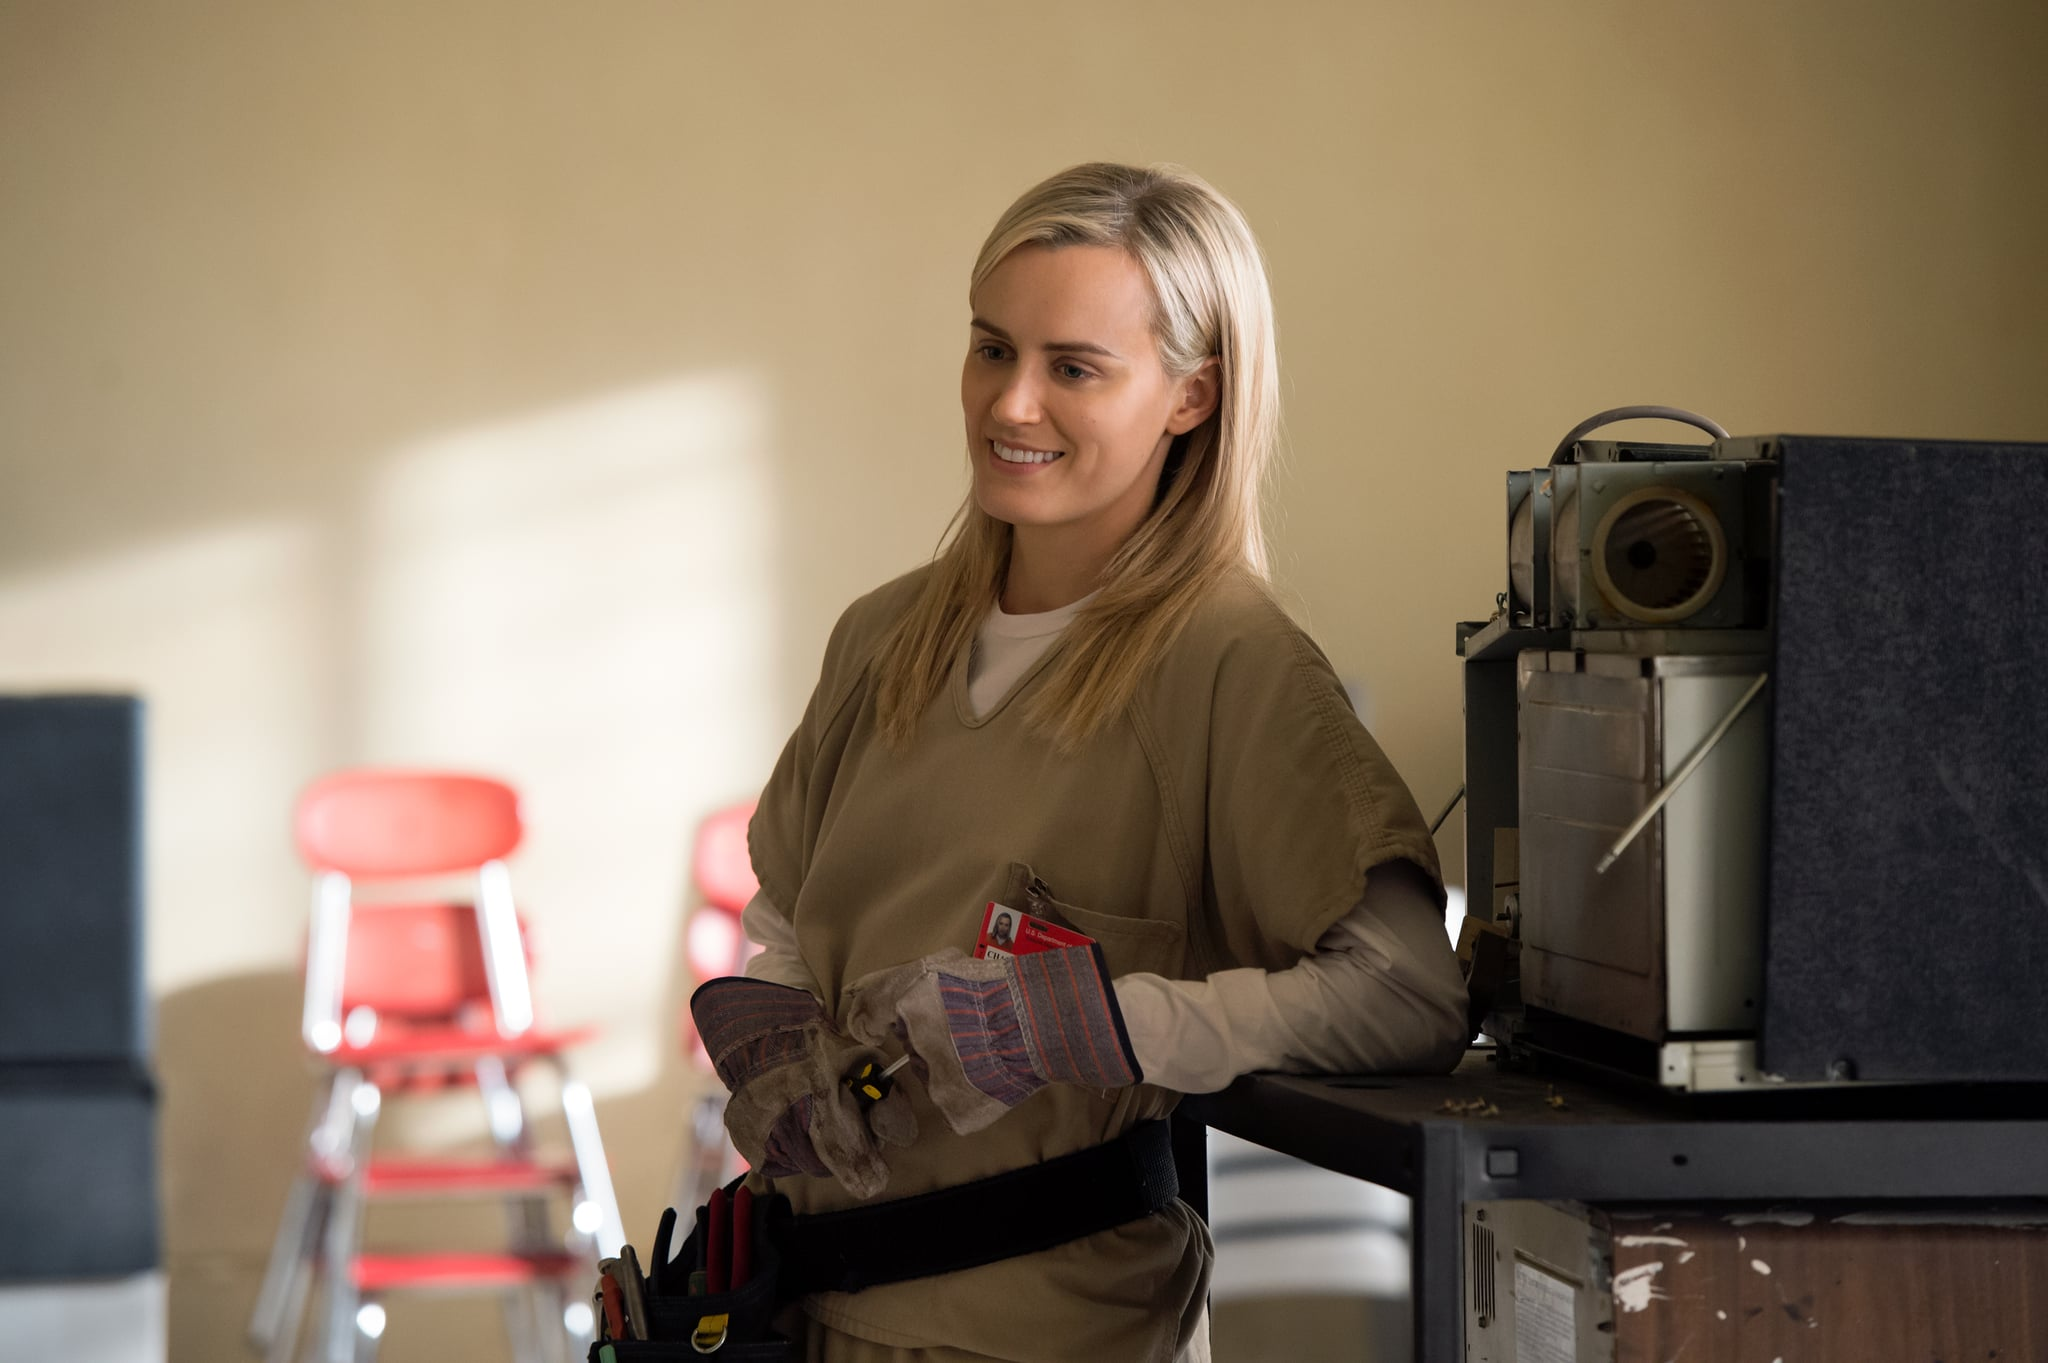 Why Is Orange Is the New Black a Drama at the Emmys? | POPSUGAR